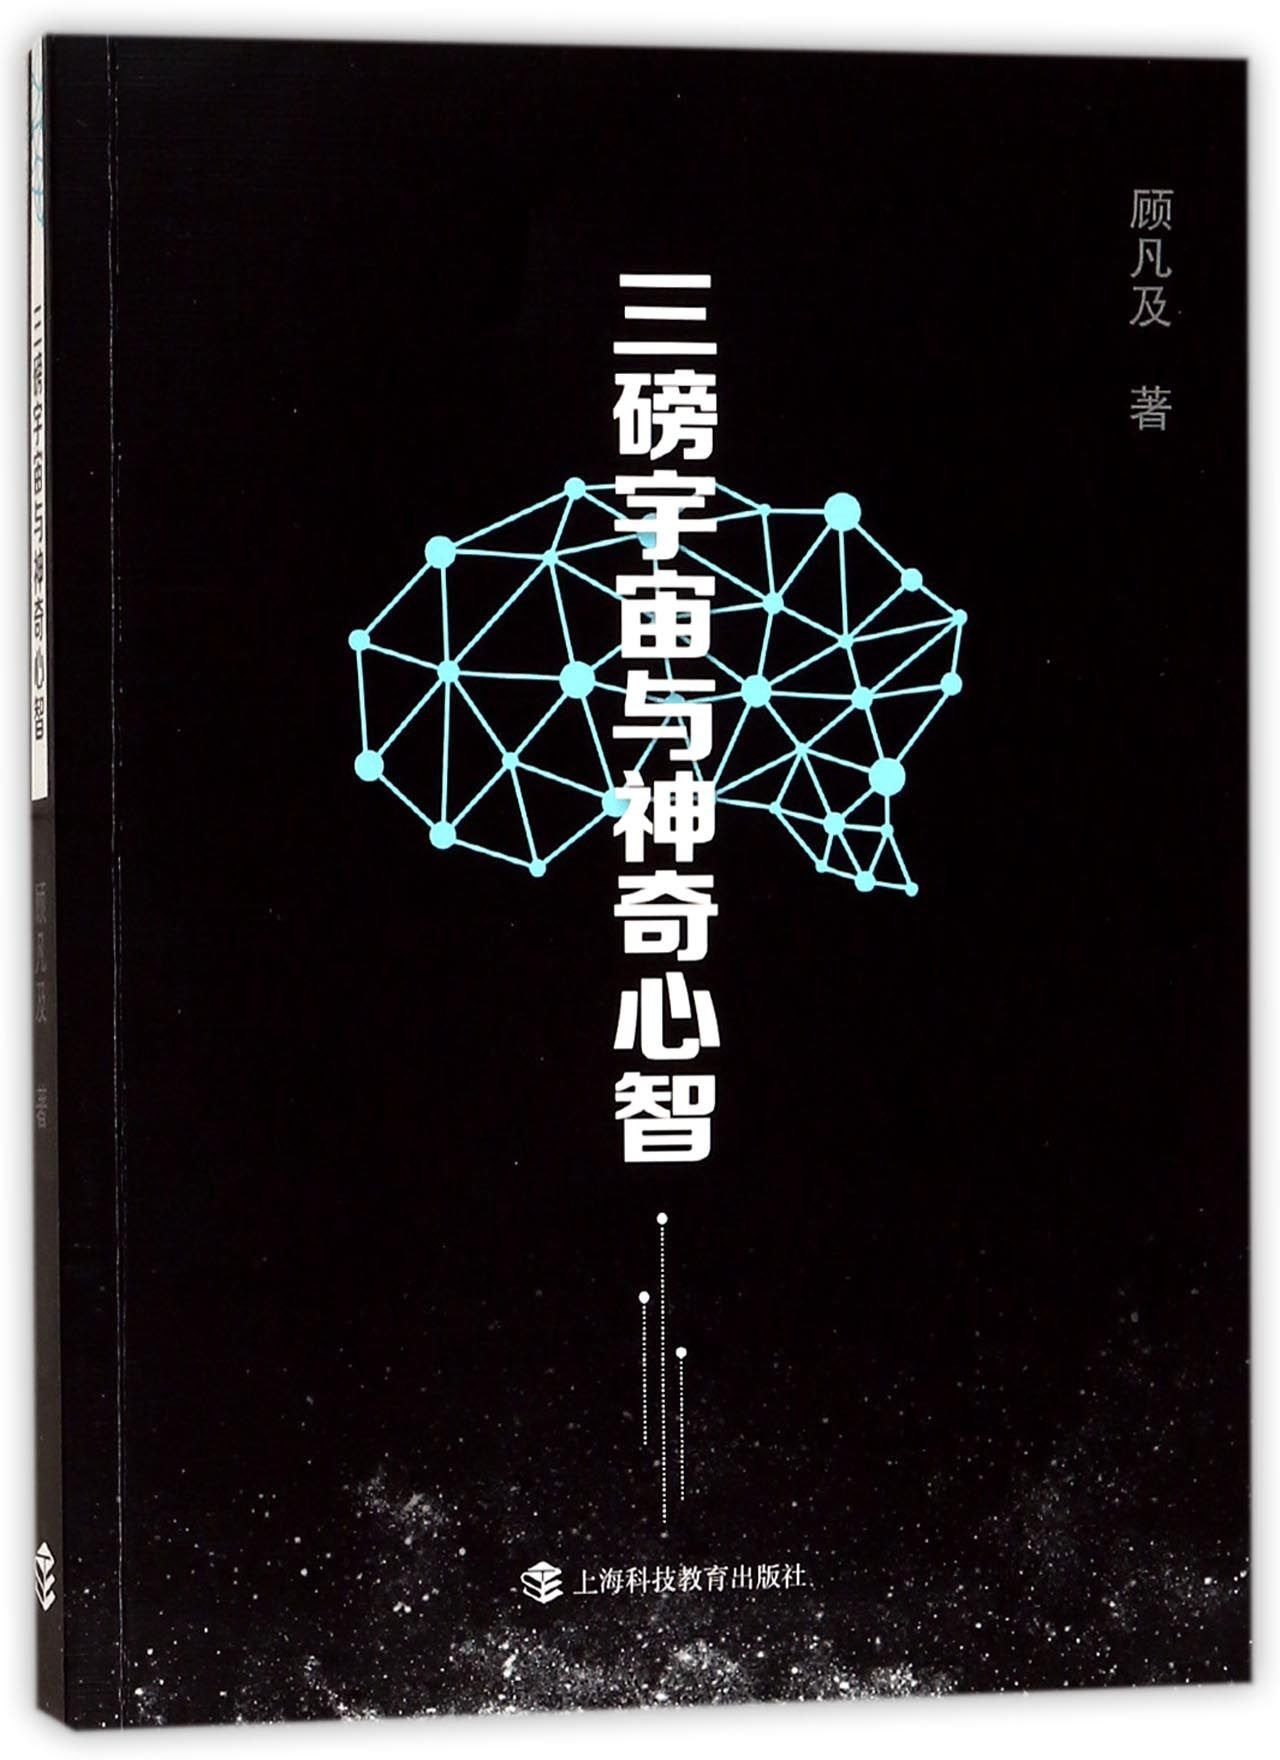 Download Three Pounds Universe and Fantastic Mind (One of the Best Chinese Books of 2017) (Chinese Edition) PDF